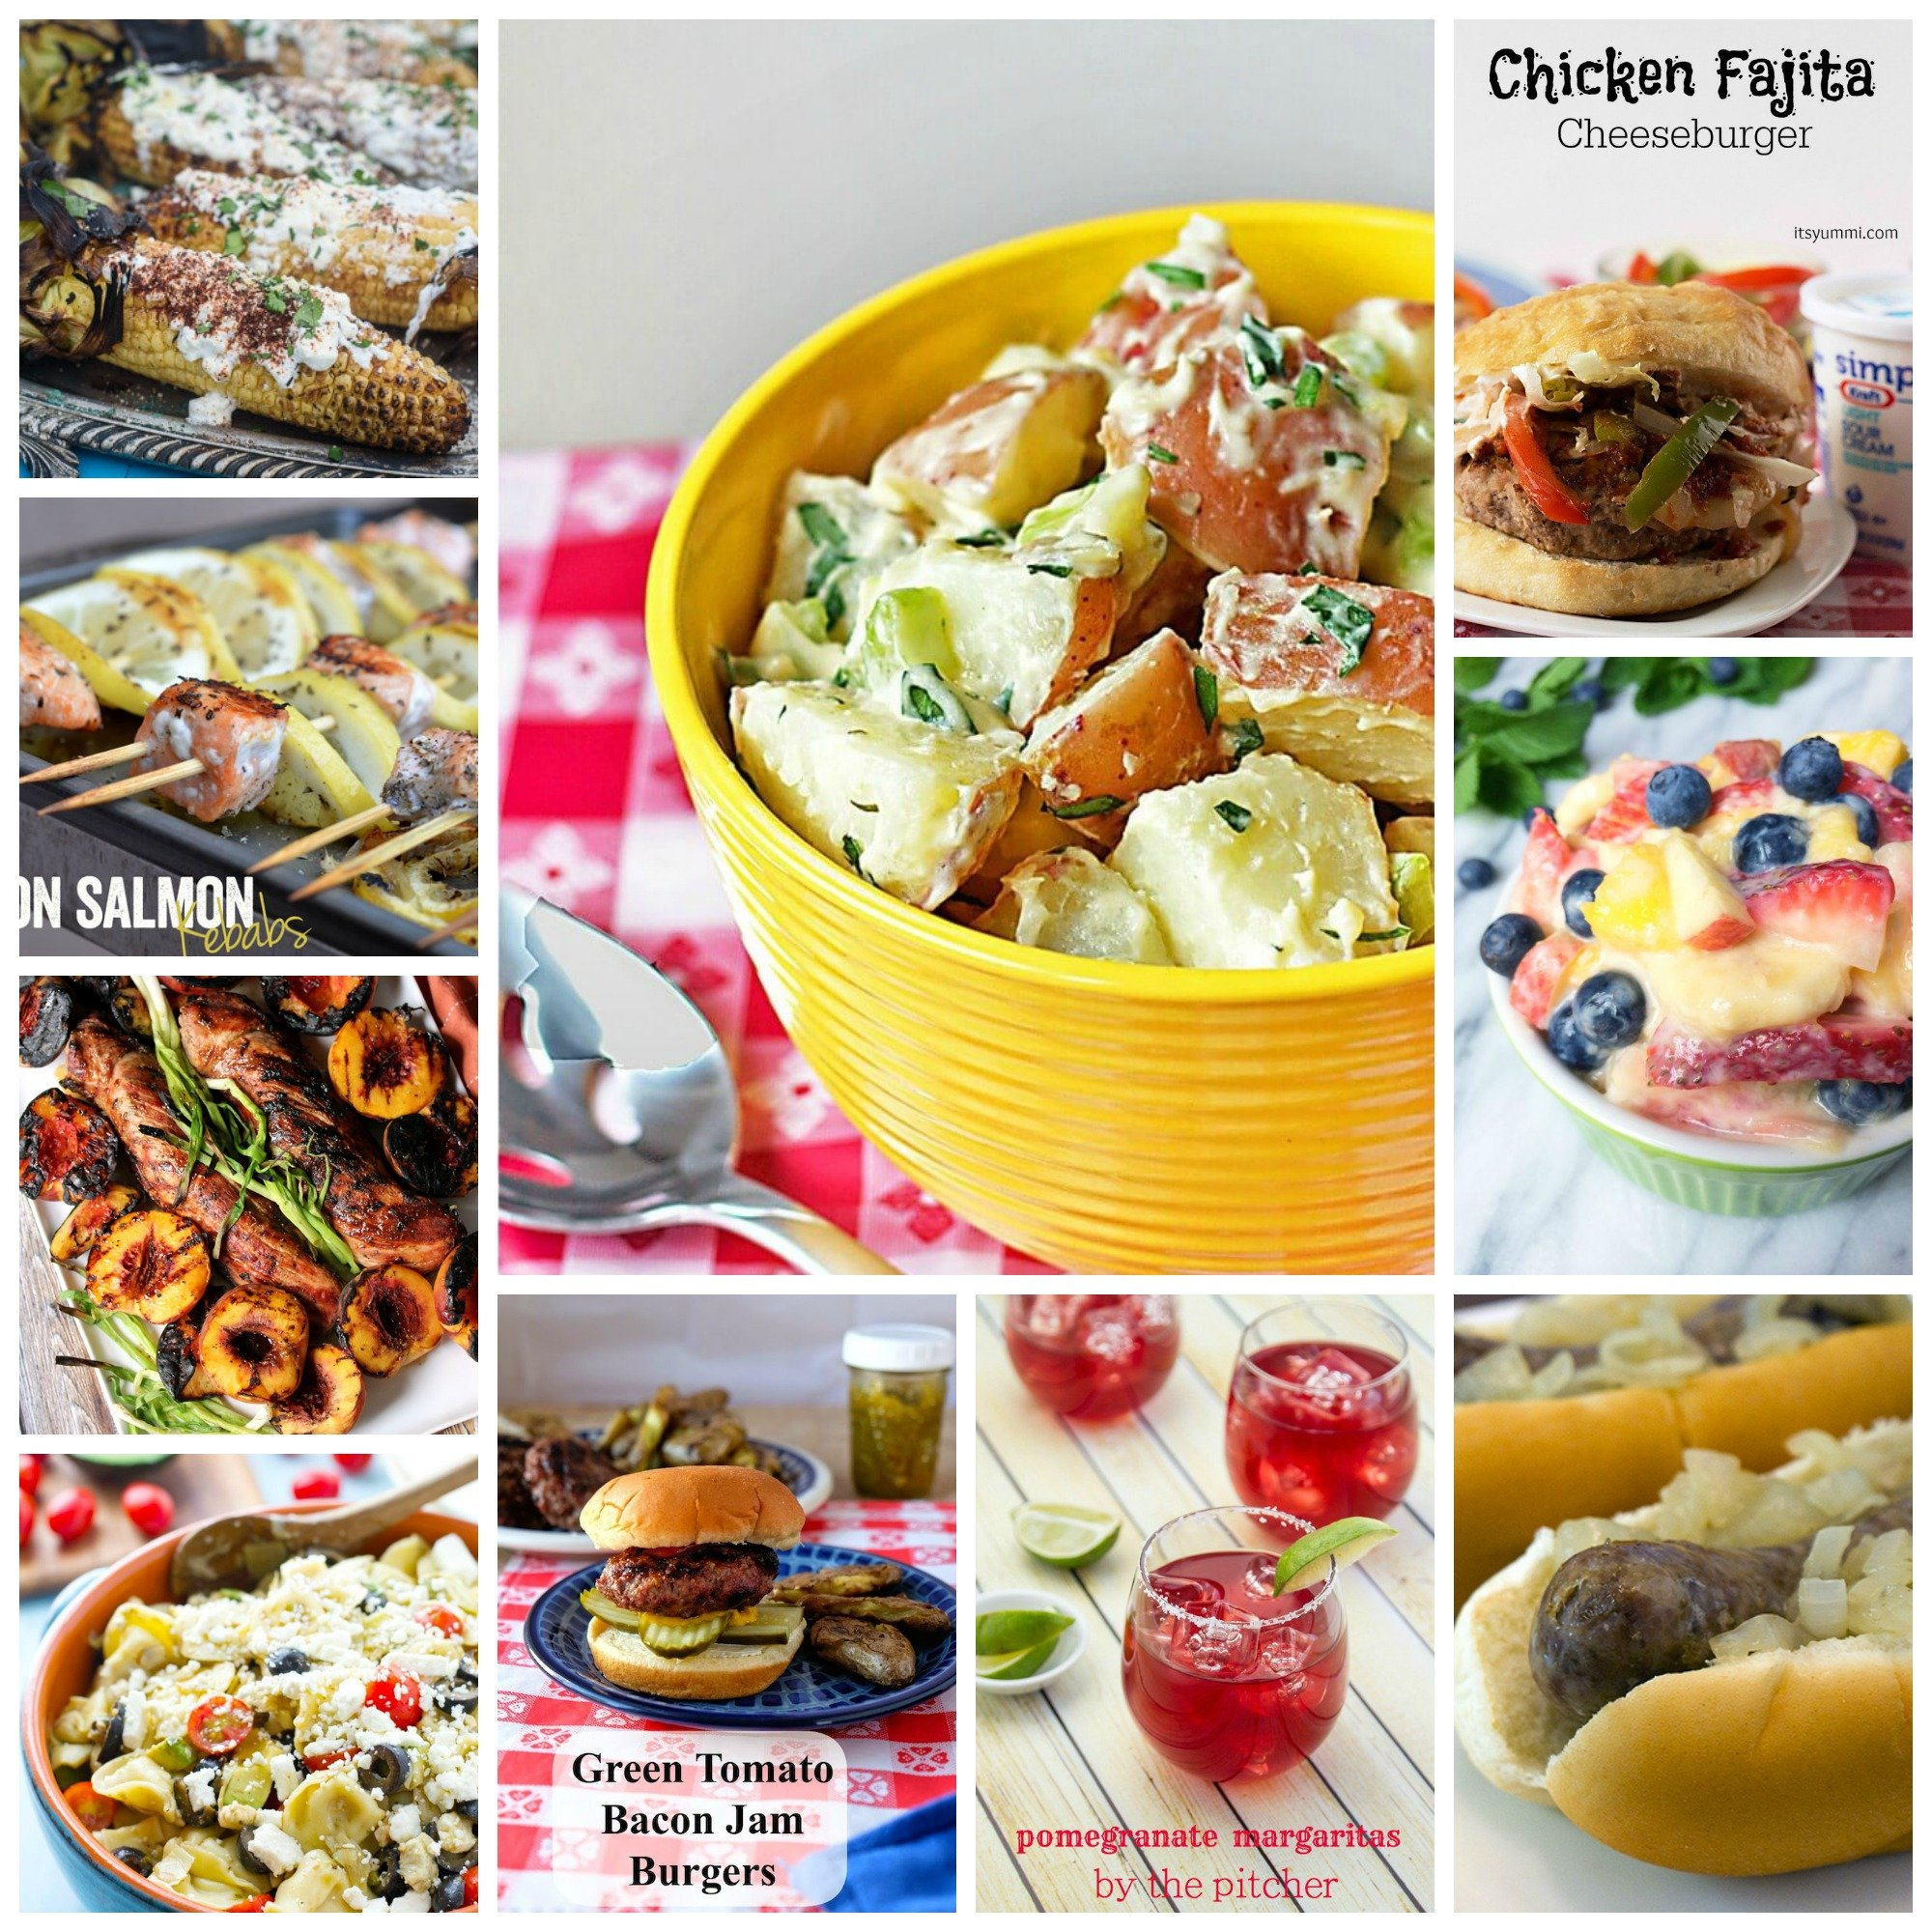 Cookout Recipes to Enjoy This Summer- Burgers, potato salad, grilled corn, and a pitcher of margaritas. Enjoy the summer with these great recipes!